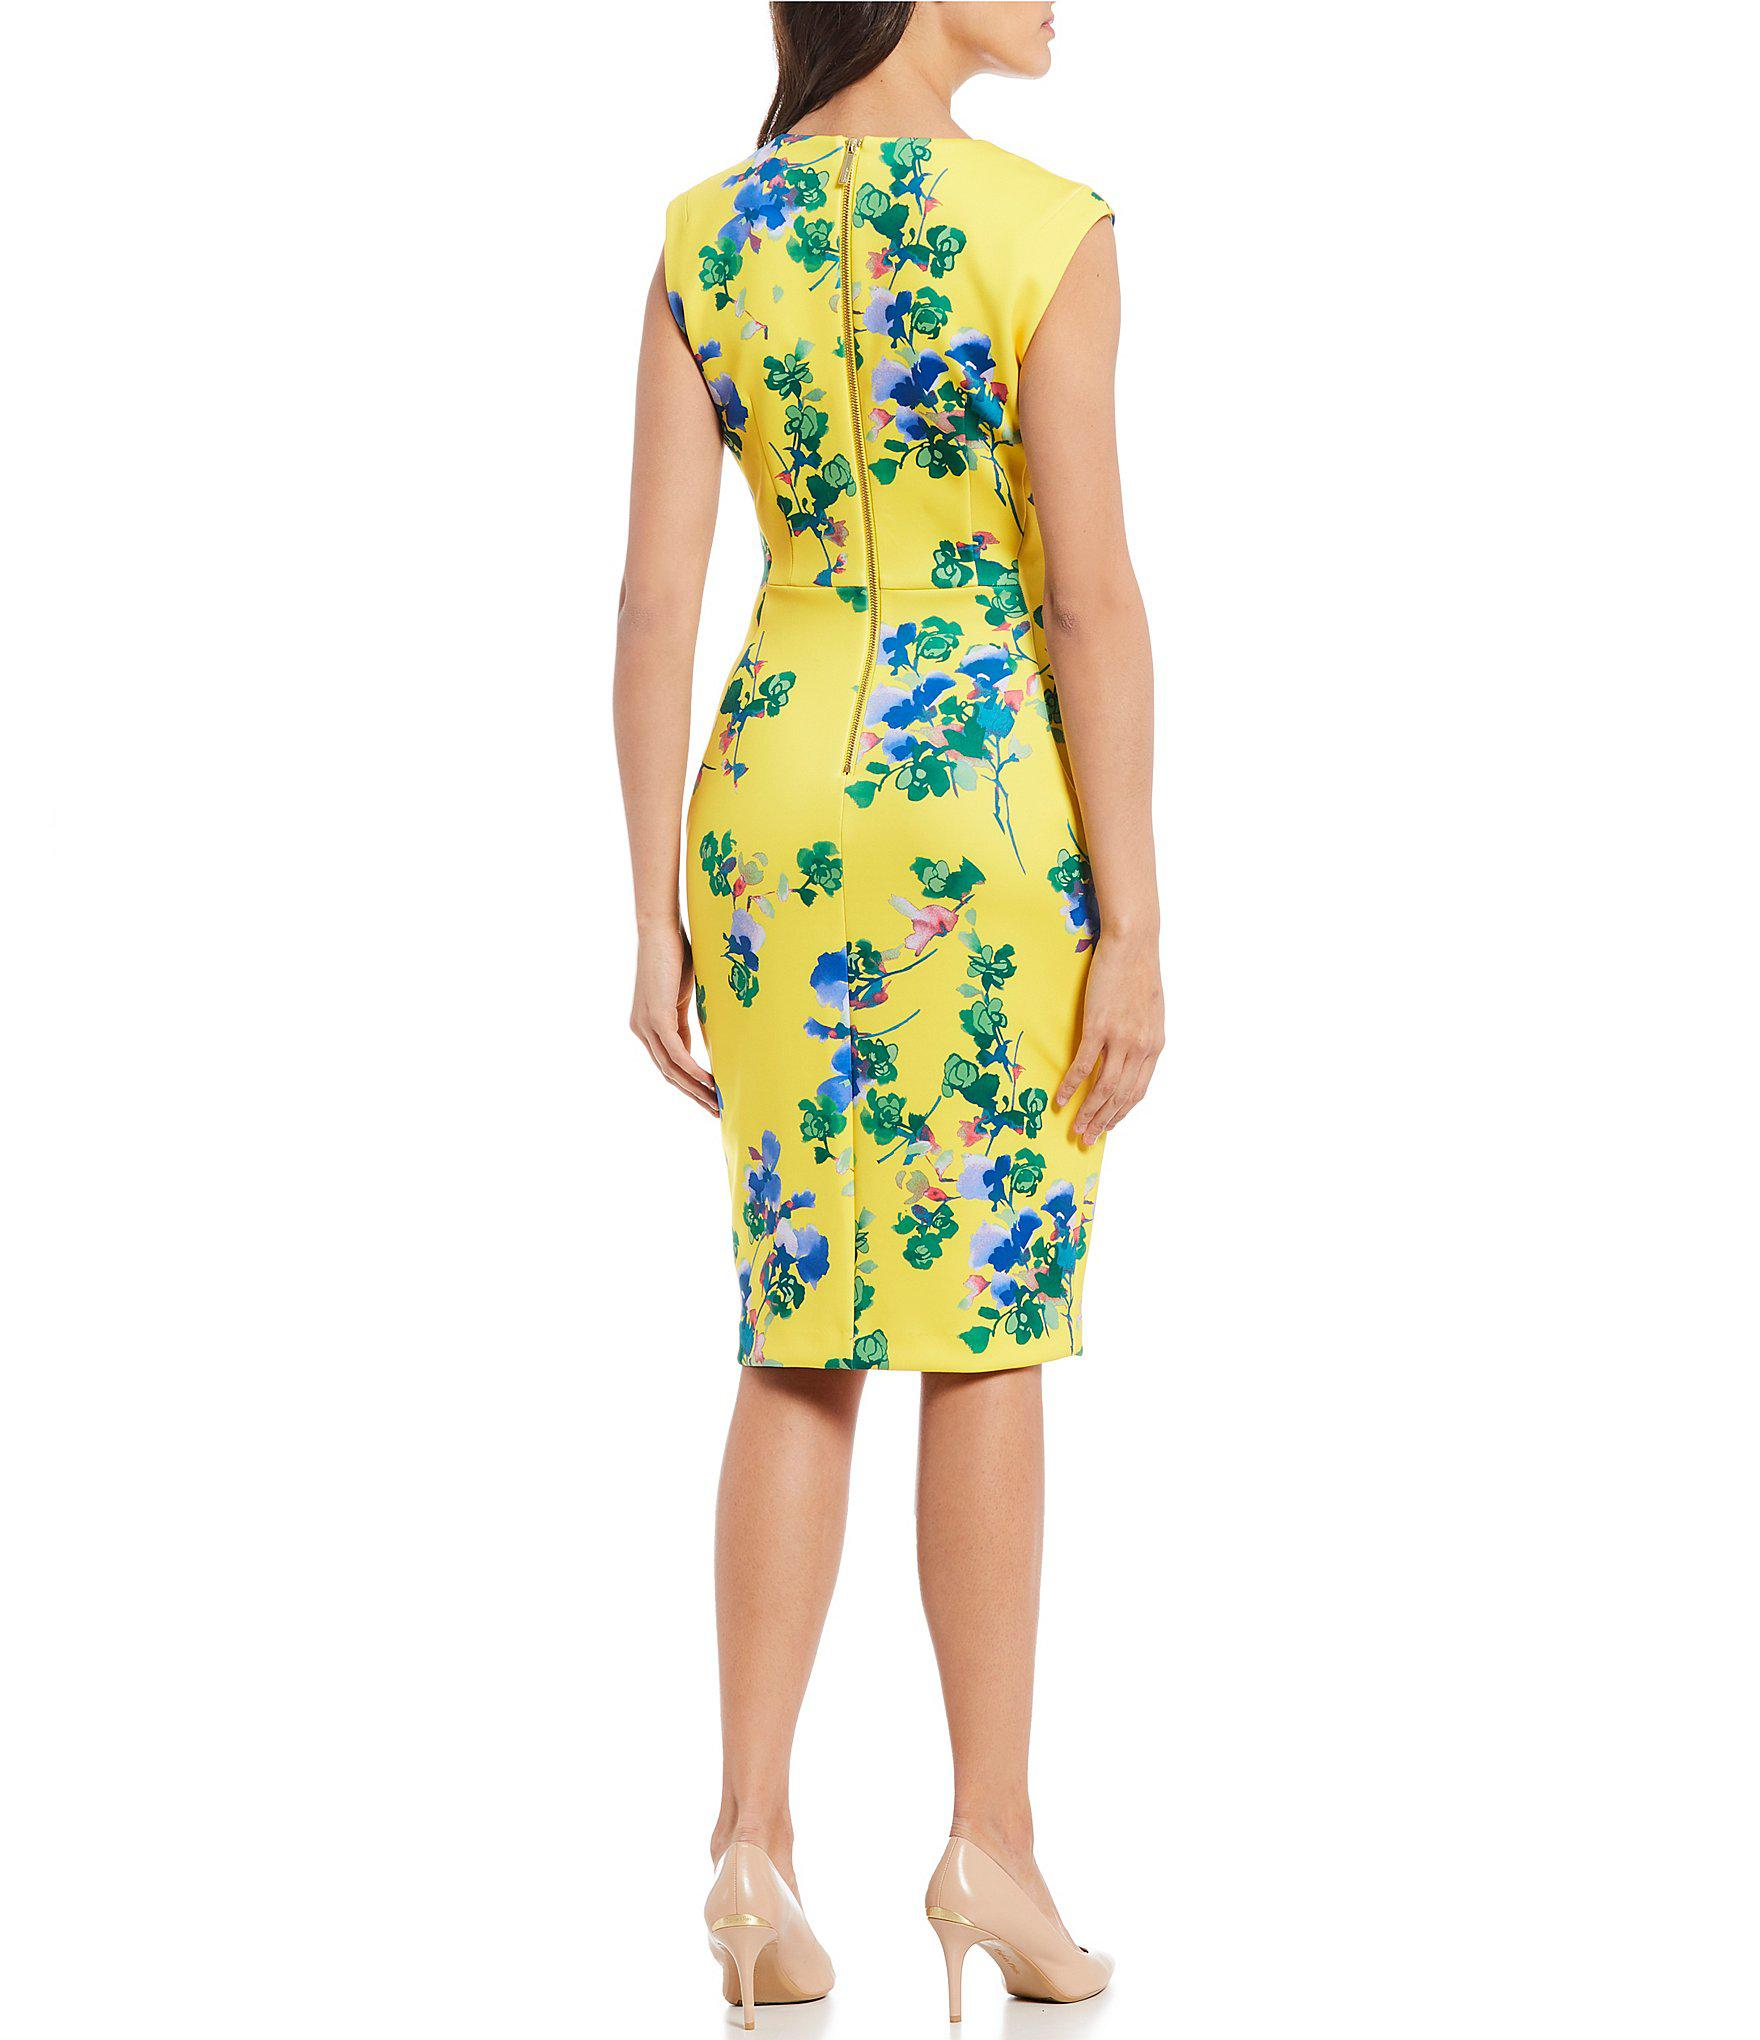 3f2b2a37e13 Calvin Klein - Yellow Floral Print V-neck Sheath Dress - Lyst. View  fullscreen